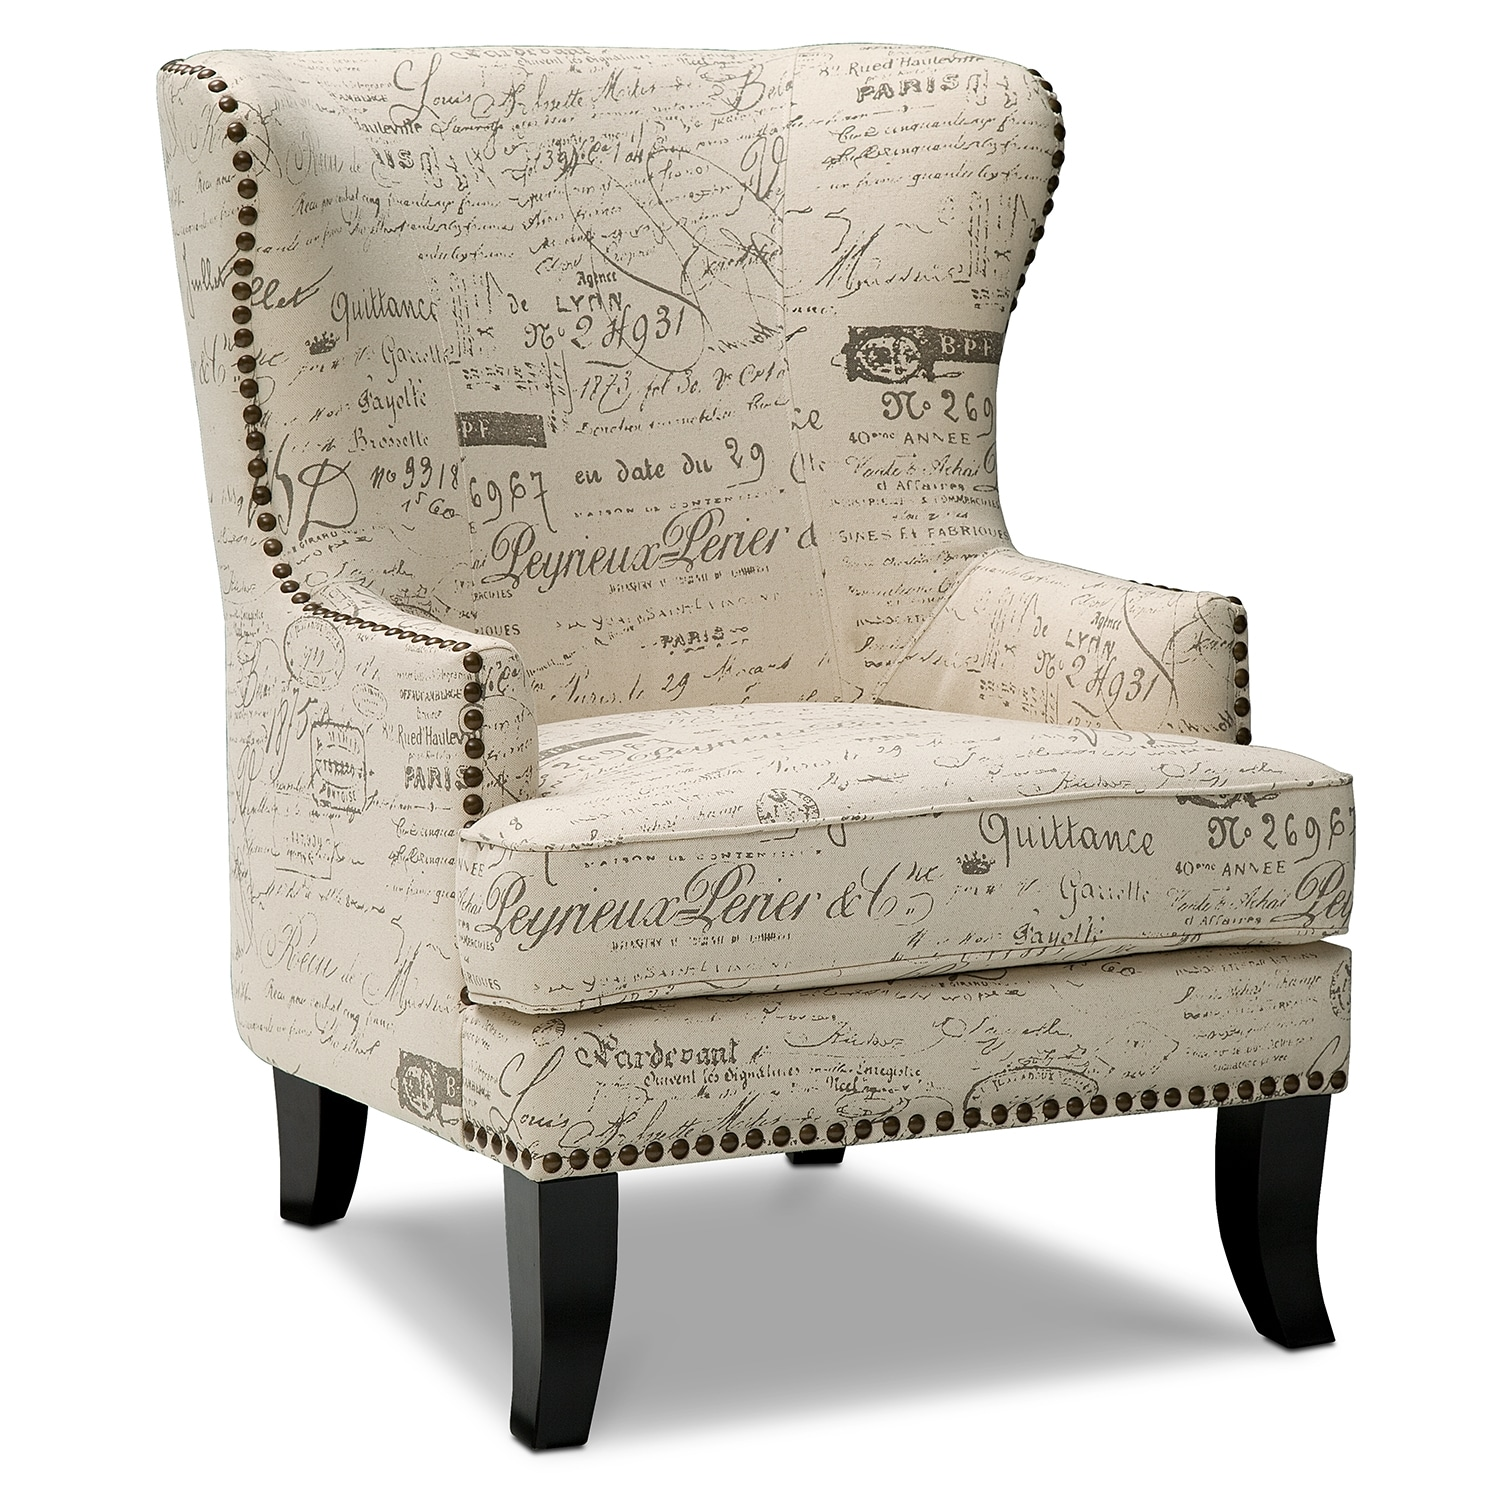 Calais Upholstery Accent Chair Furniturecom : 293778 from furniture.com size 1500 x 1500 jpeg 1057kB